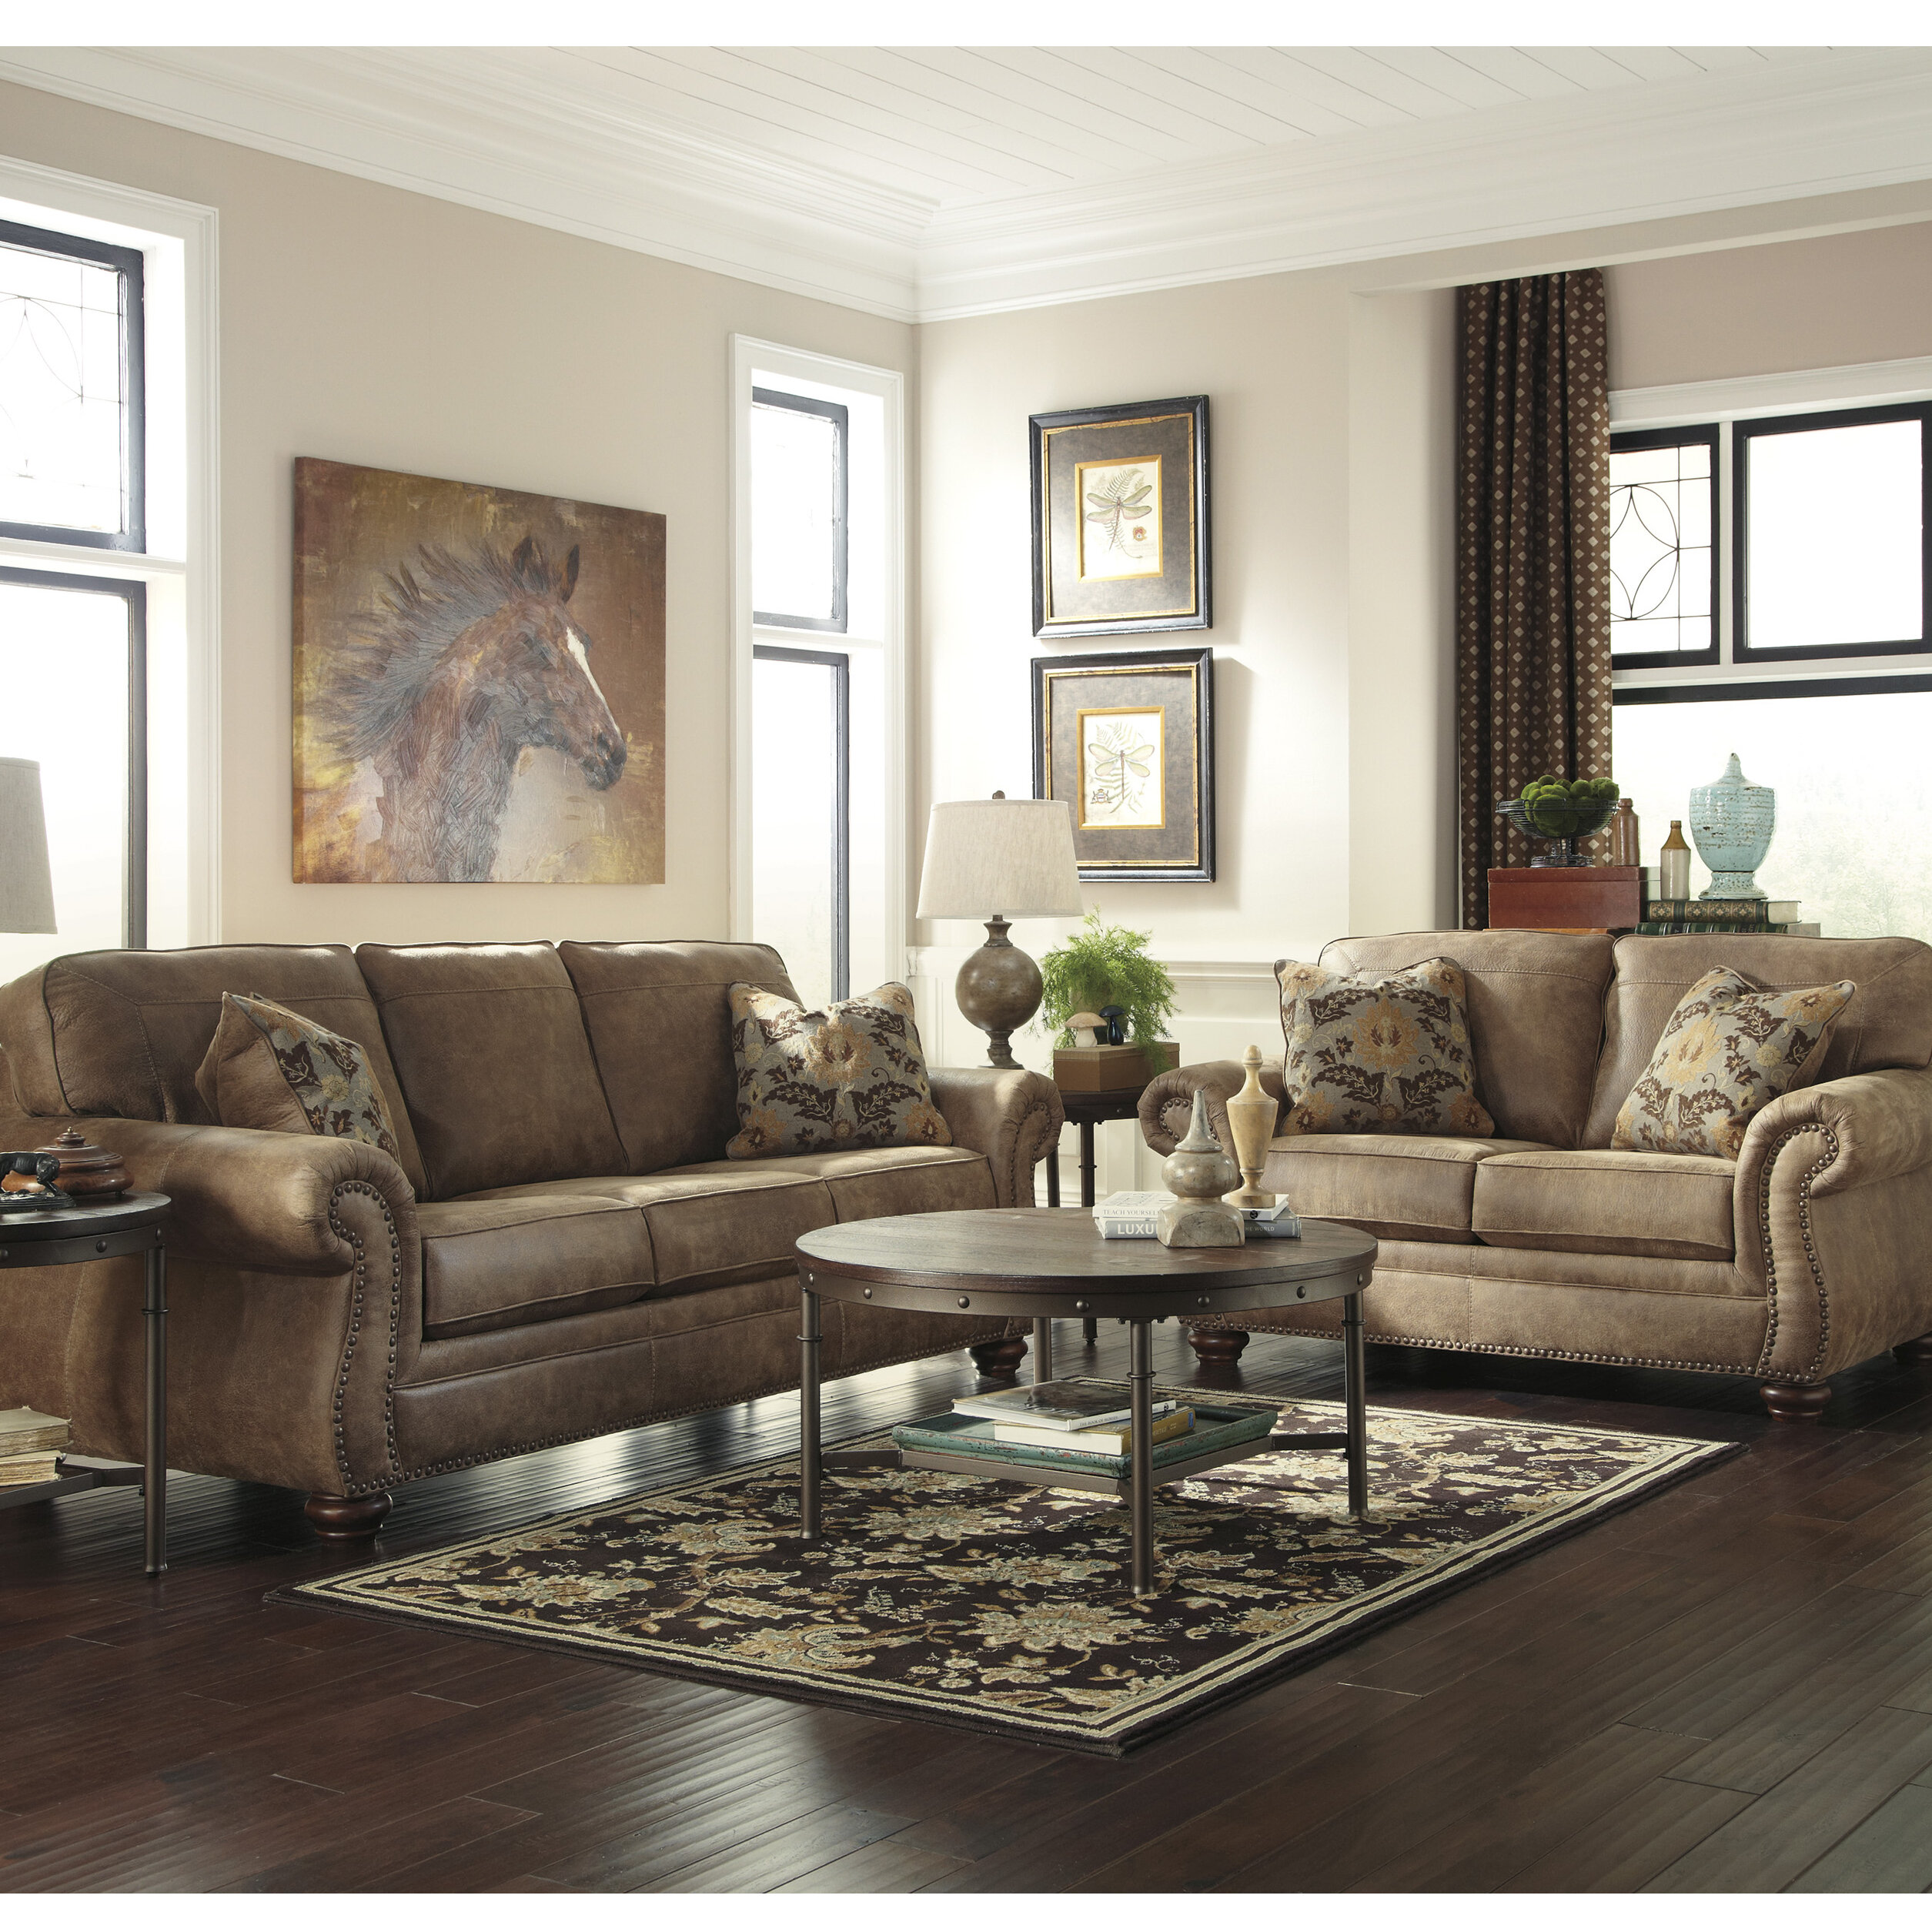 Darby home co fae 2 piece living room set wayfair